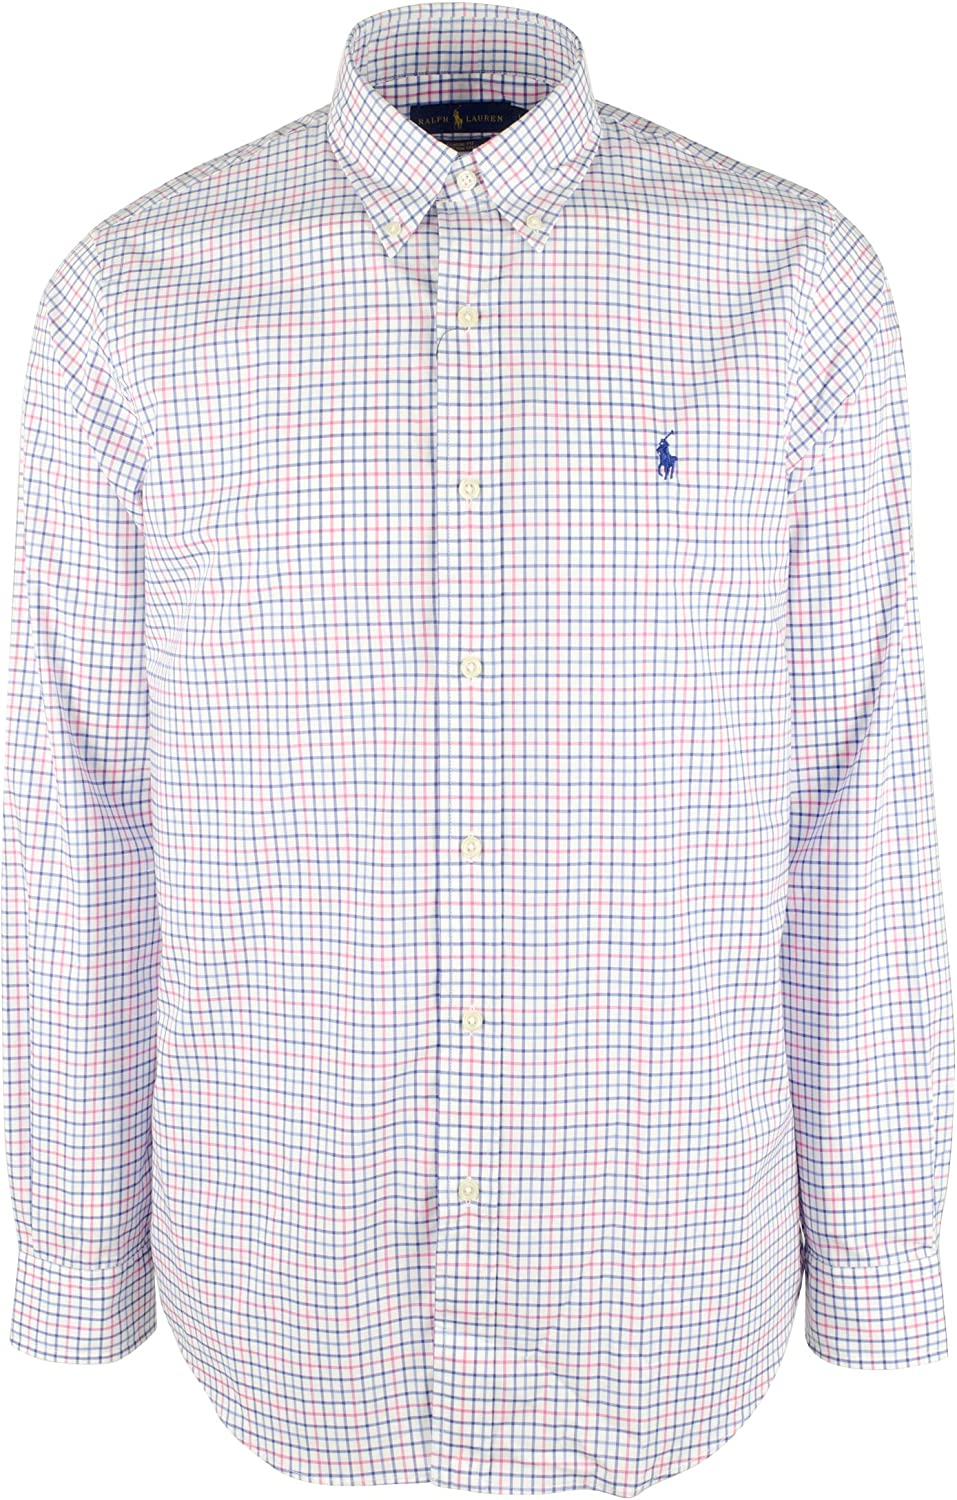 Polo Ralph Lauren Men's Big and Tall Checked Long Sleeves Shirt